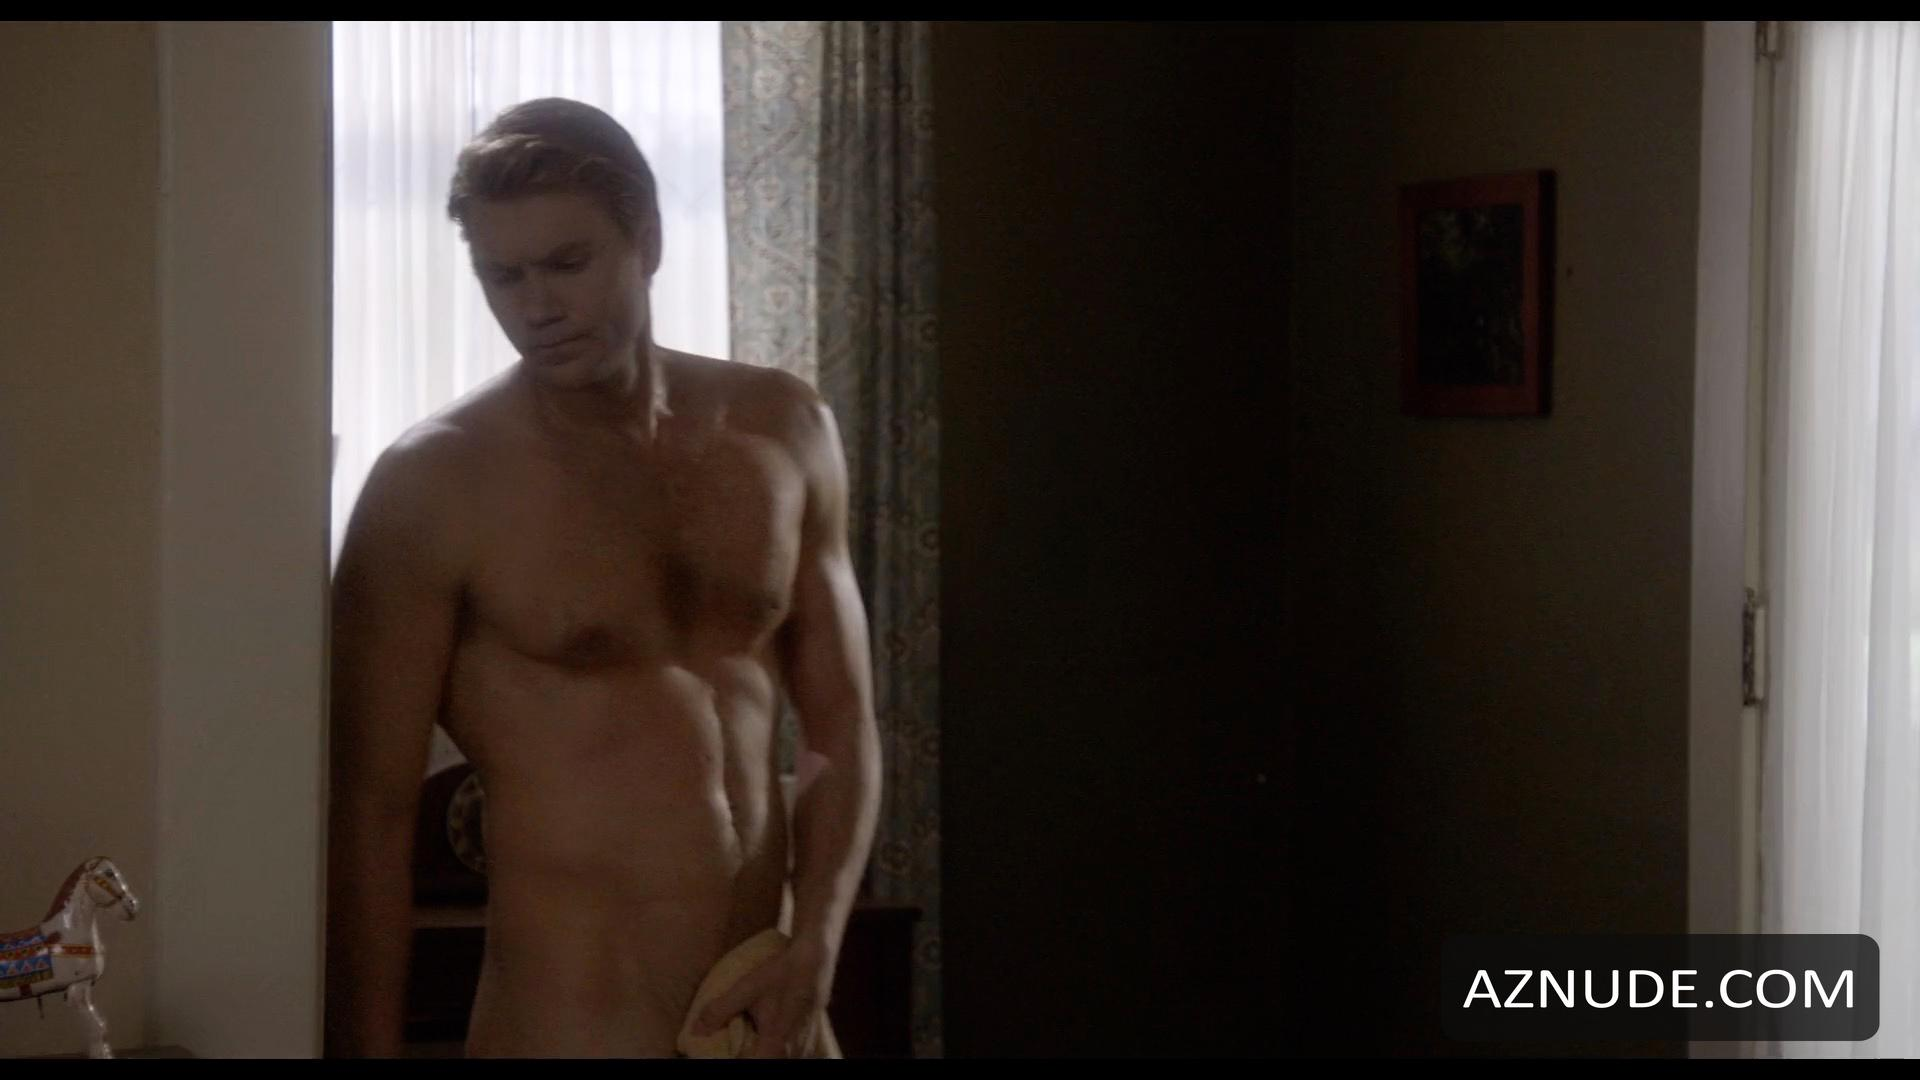 Chad michael murray exposed nude, boy fucked in front of people